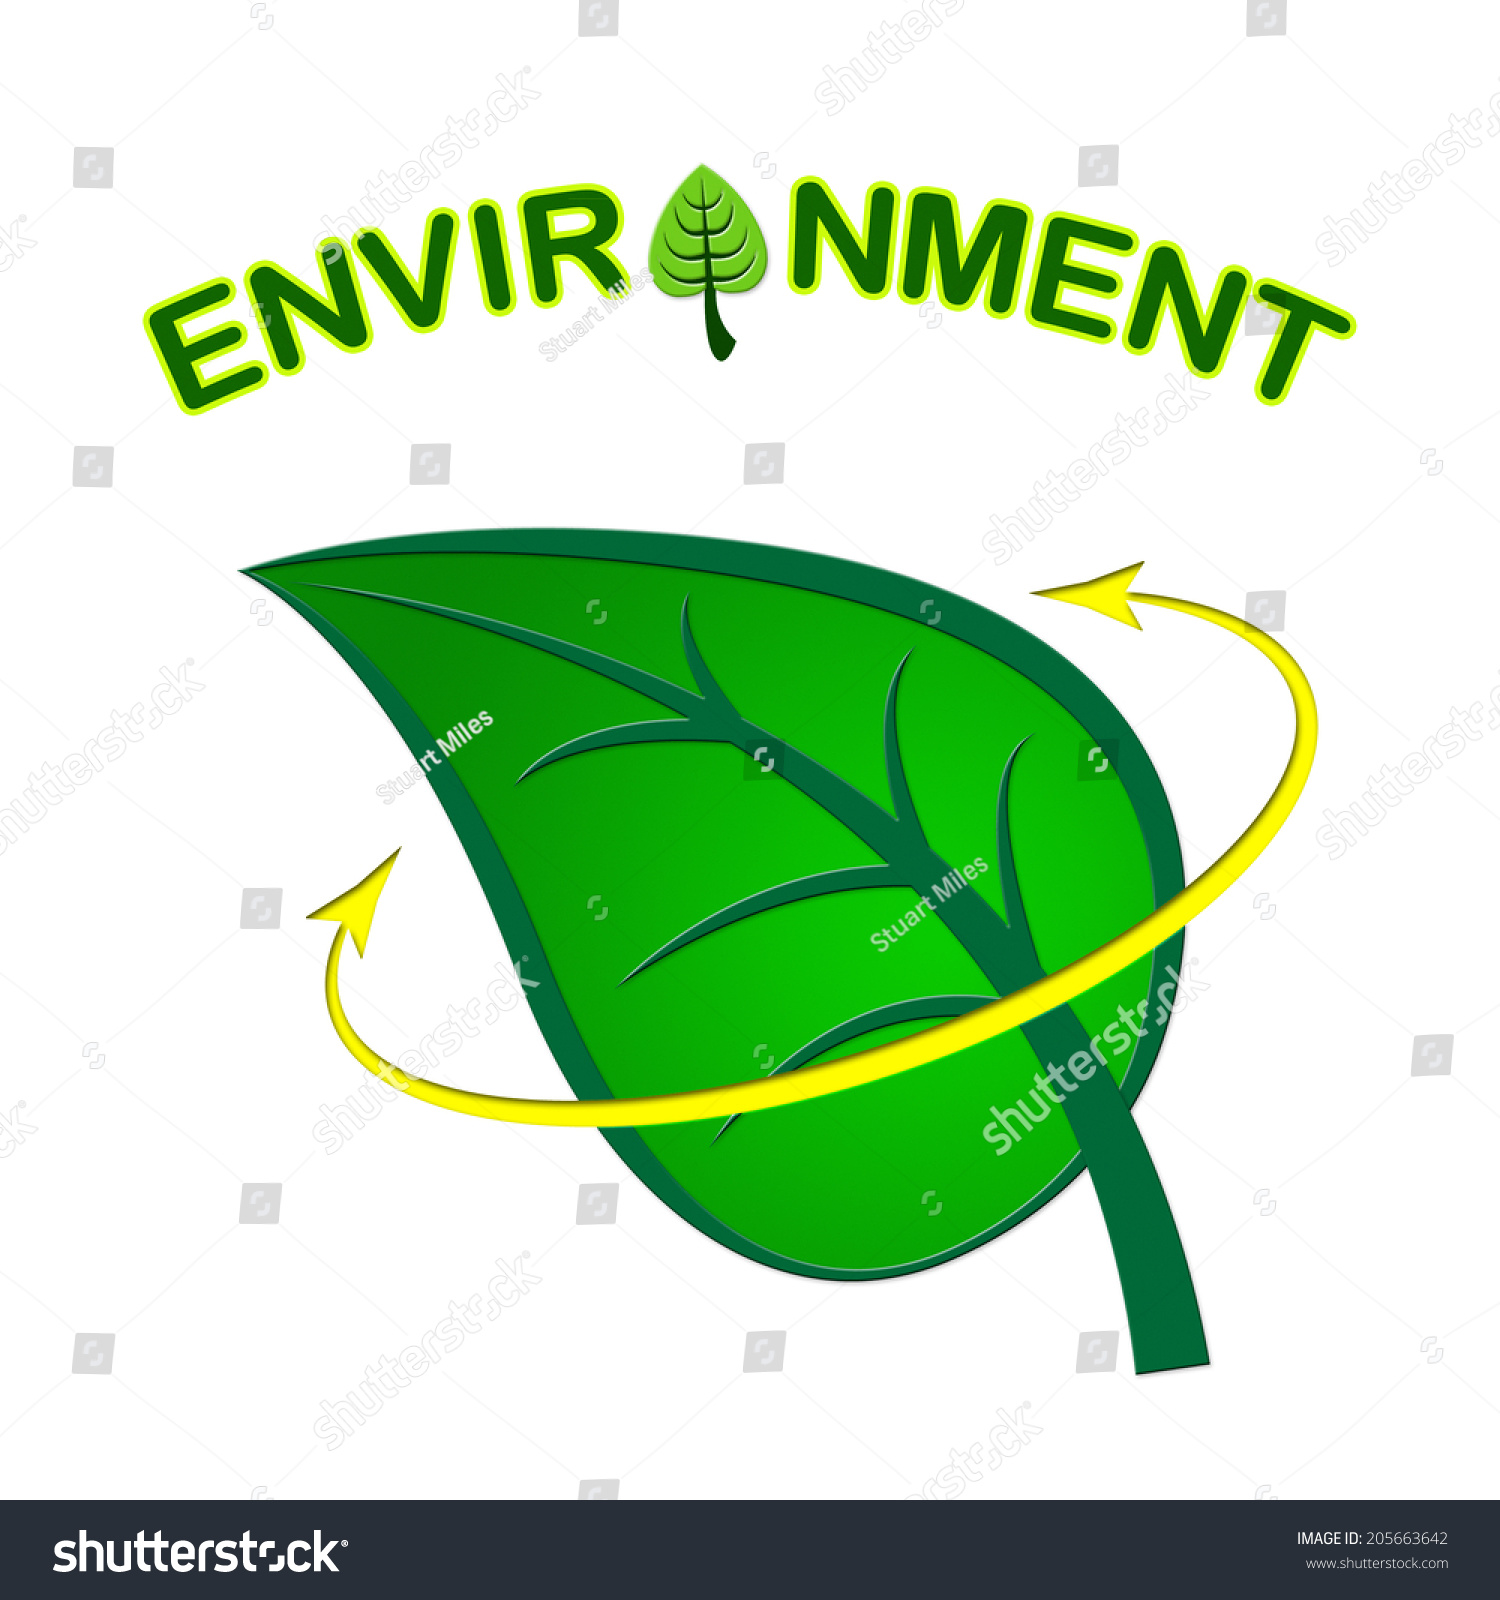 Environment Leaf Meaning Eco Friendly Recycling Stock Illustration